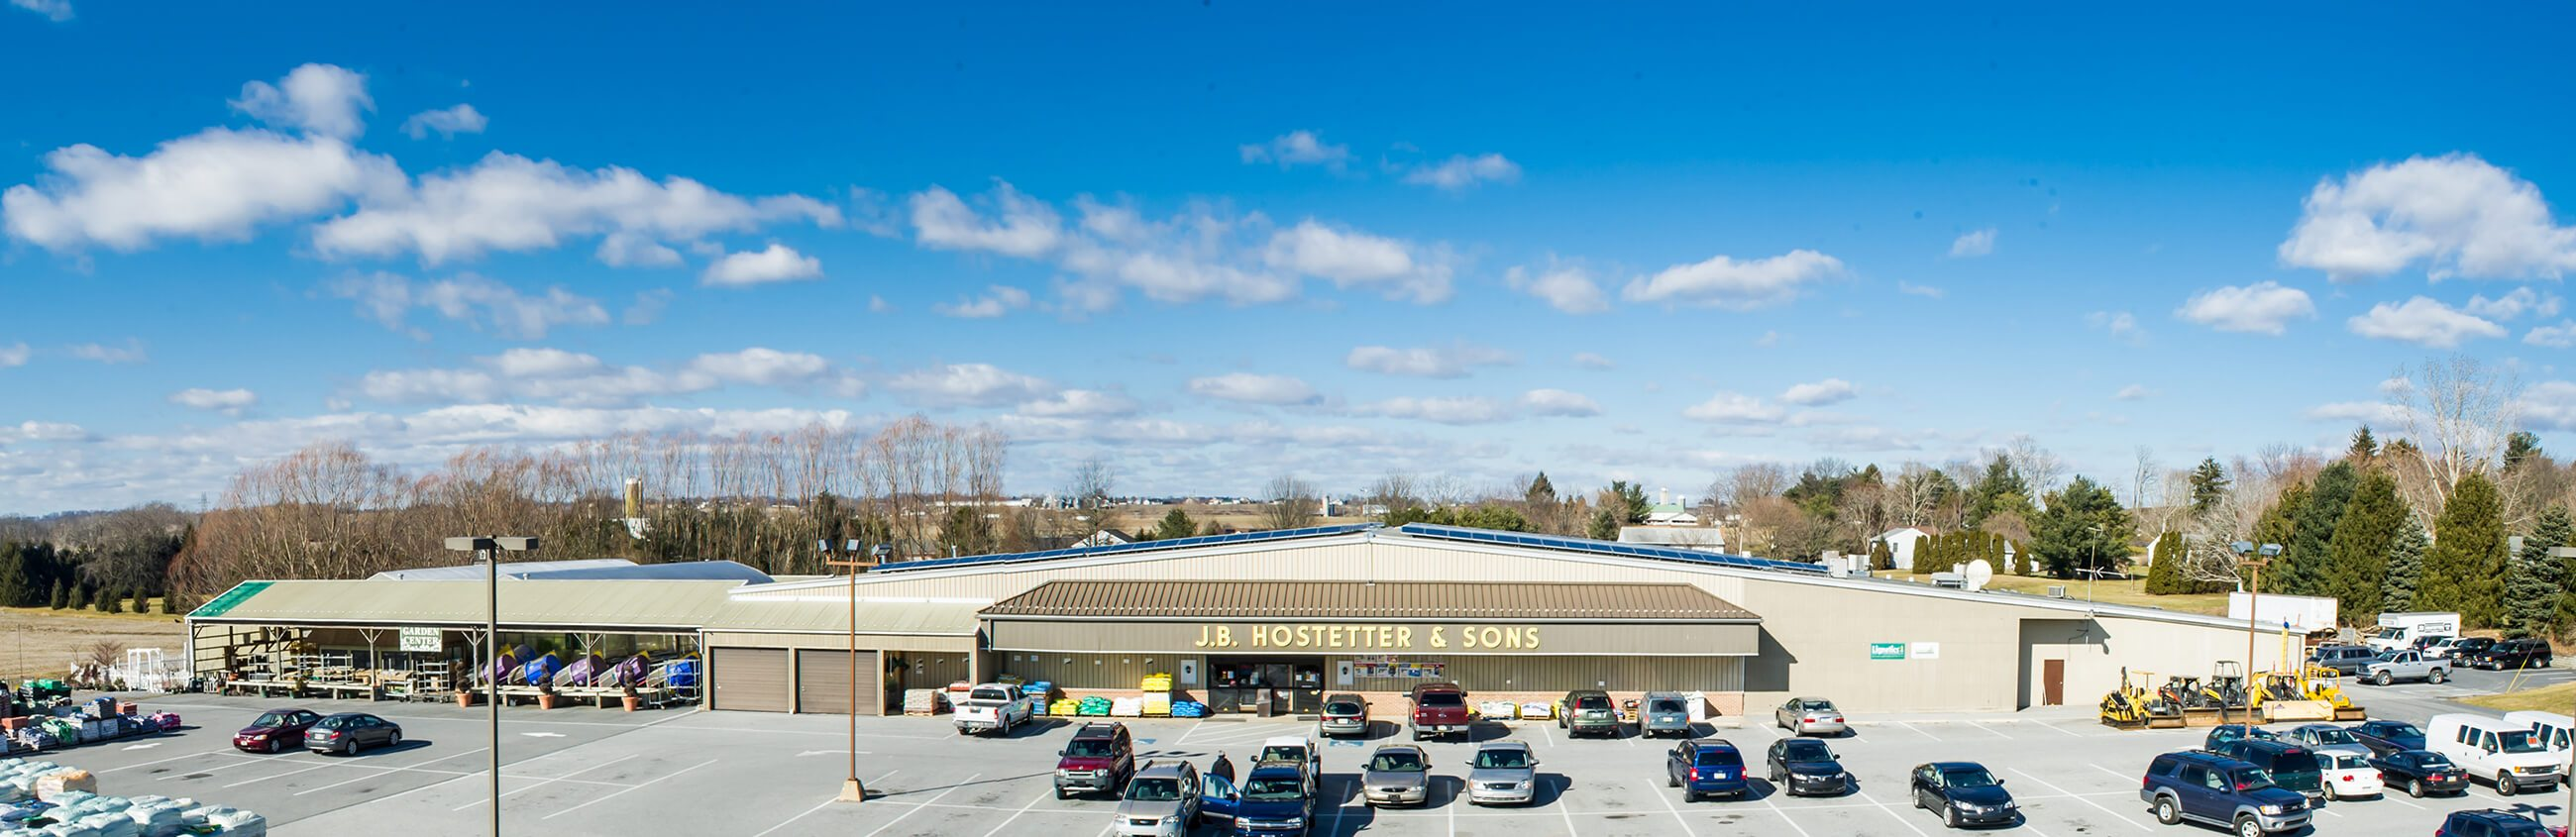 JB Hostetter store front and parking lot